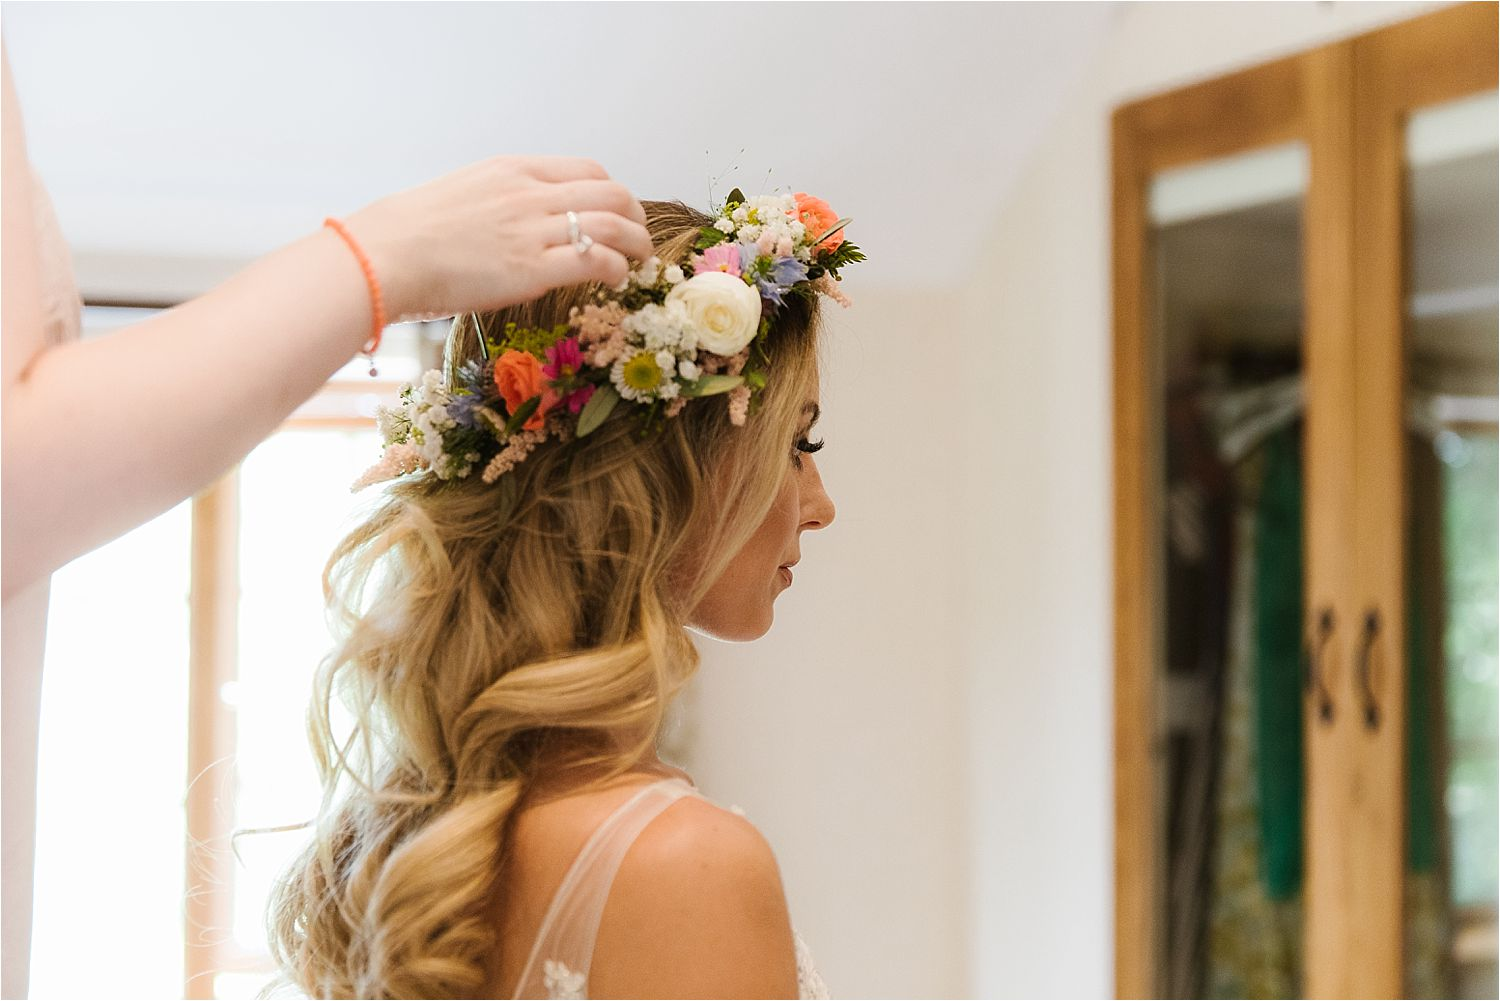 Floral Headress by Green Earth Flowers, being pinned in place by stylist Lizzie Griffiths